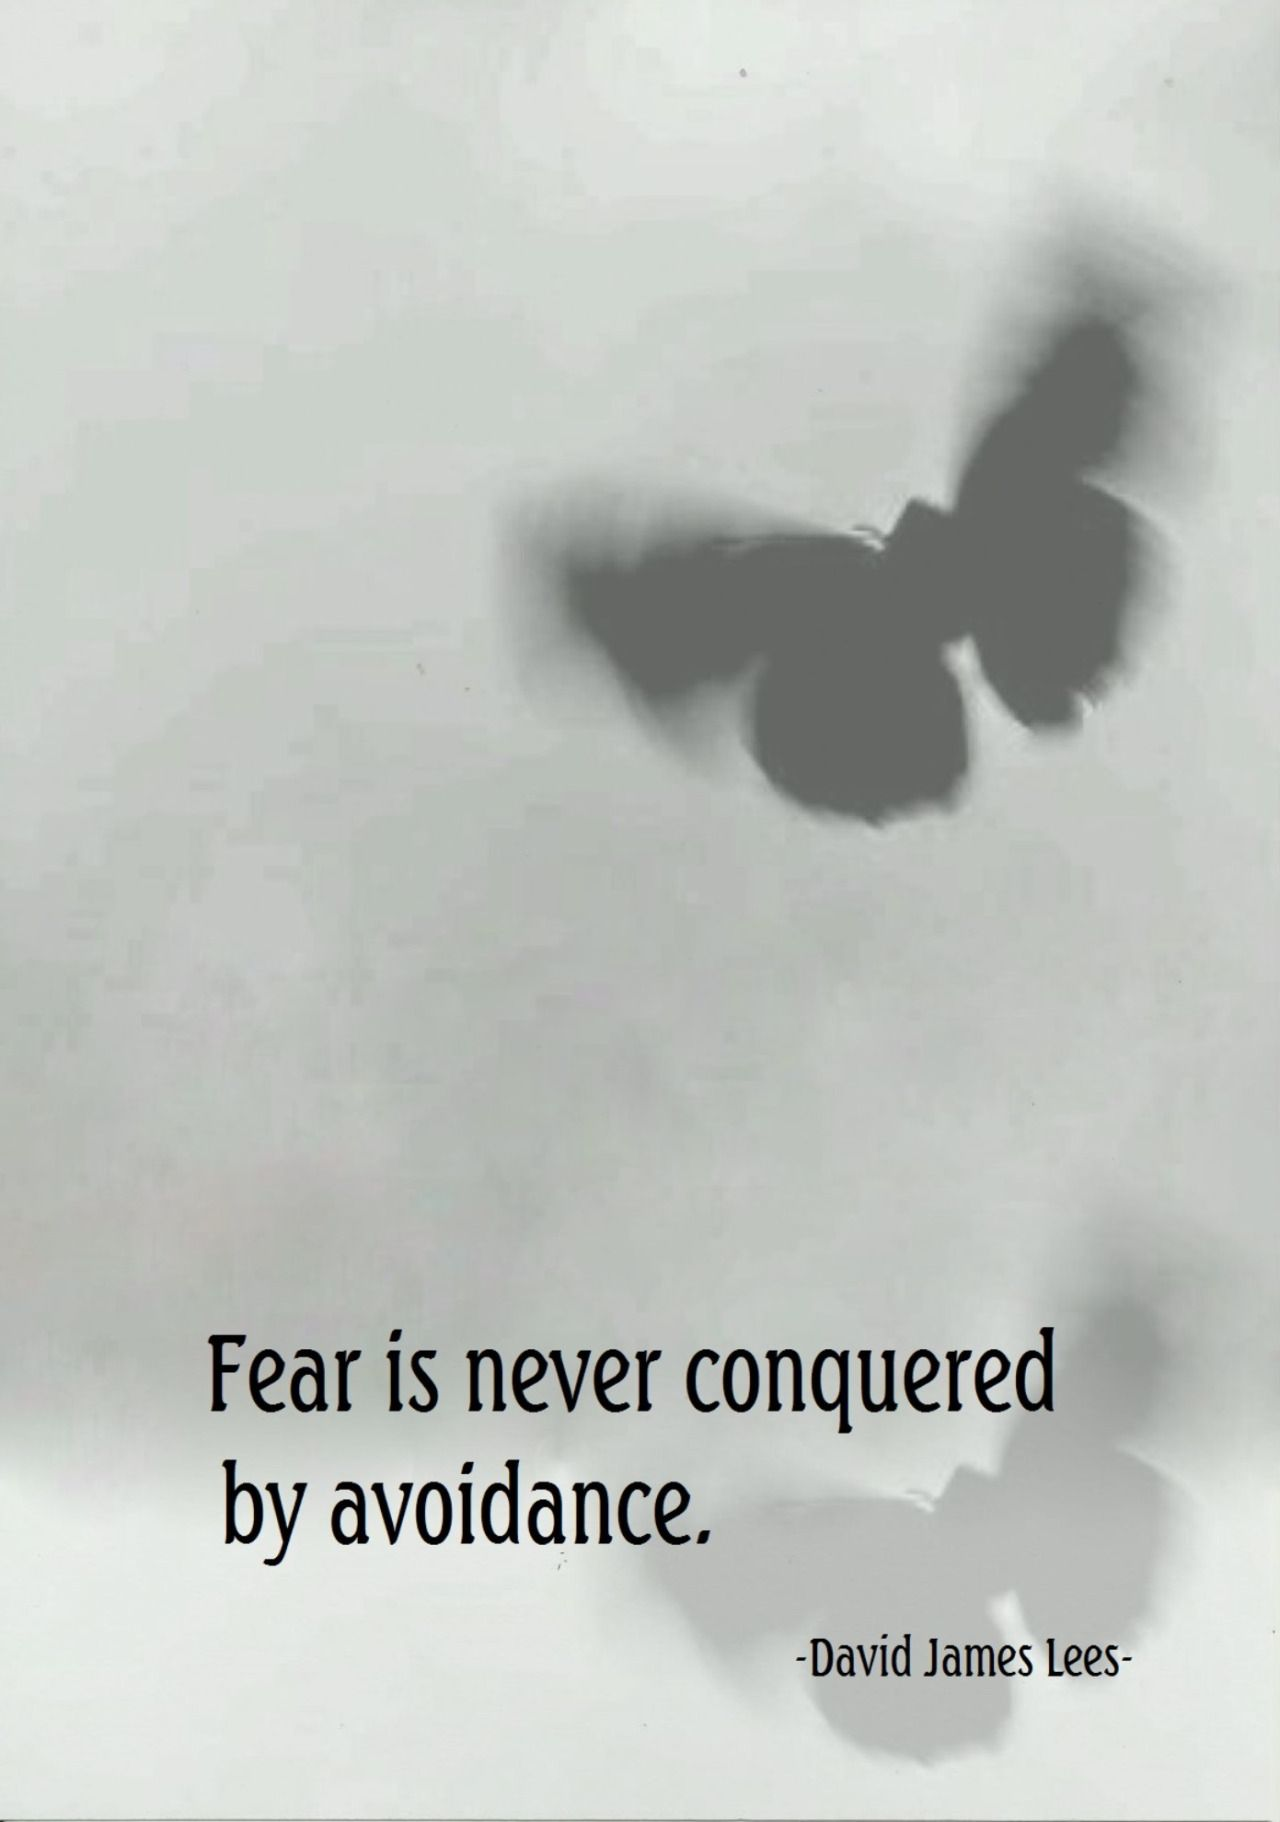 Fear is never conquered by avoidance. (David James Lees) source of image quotesgram